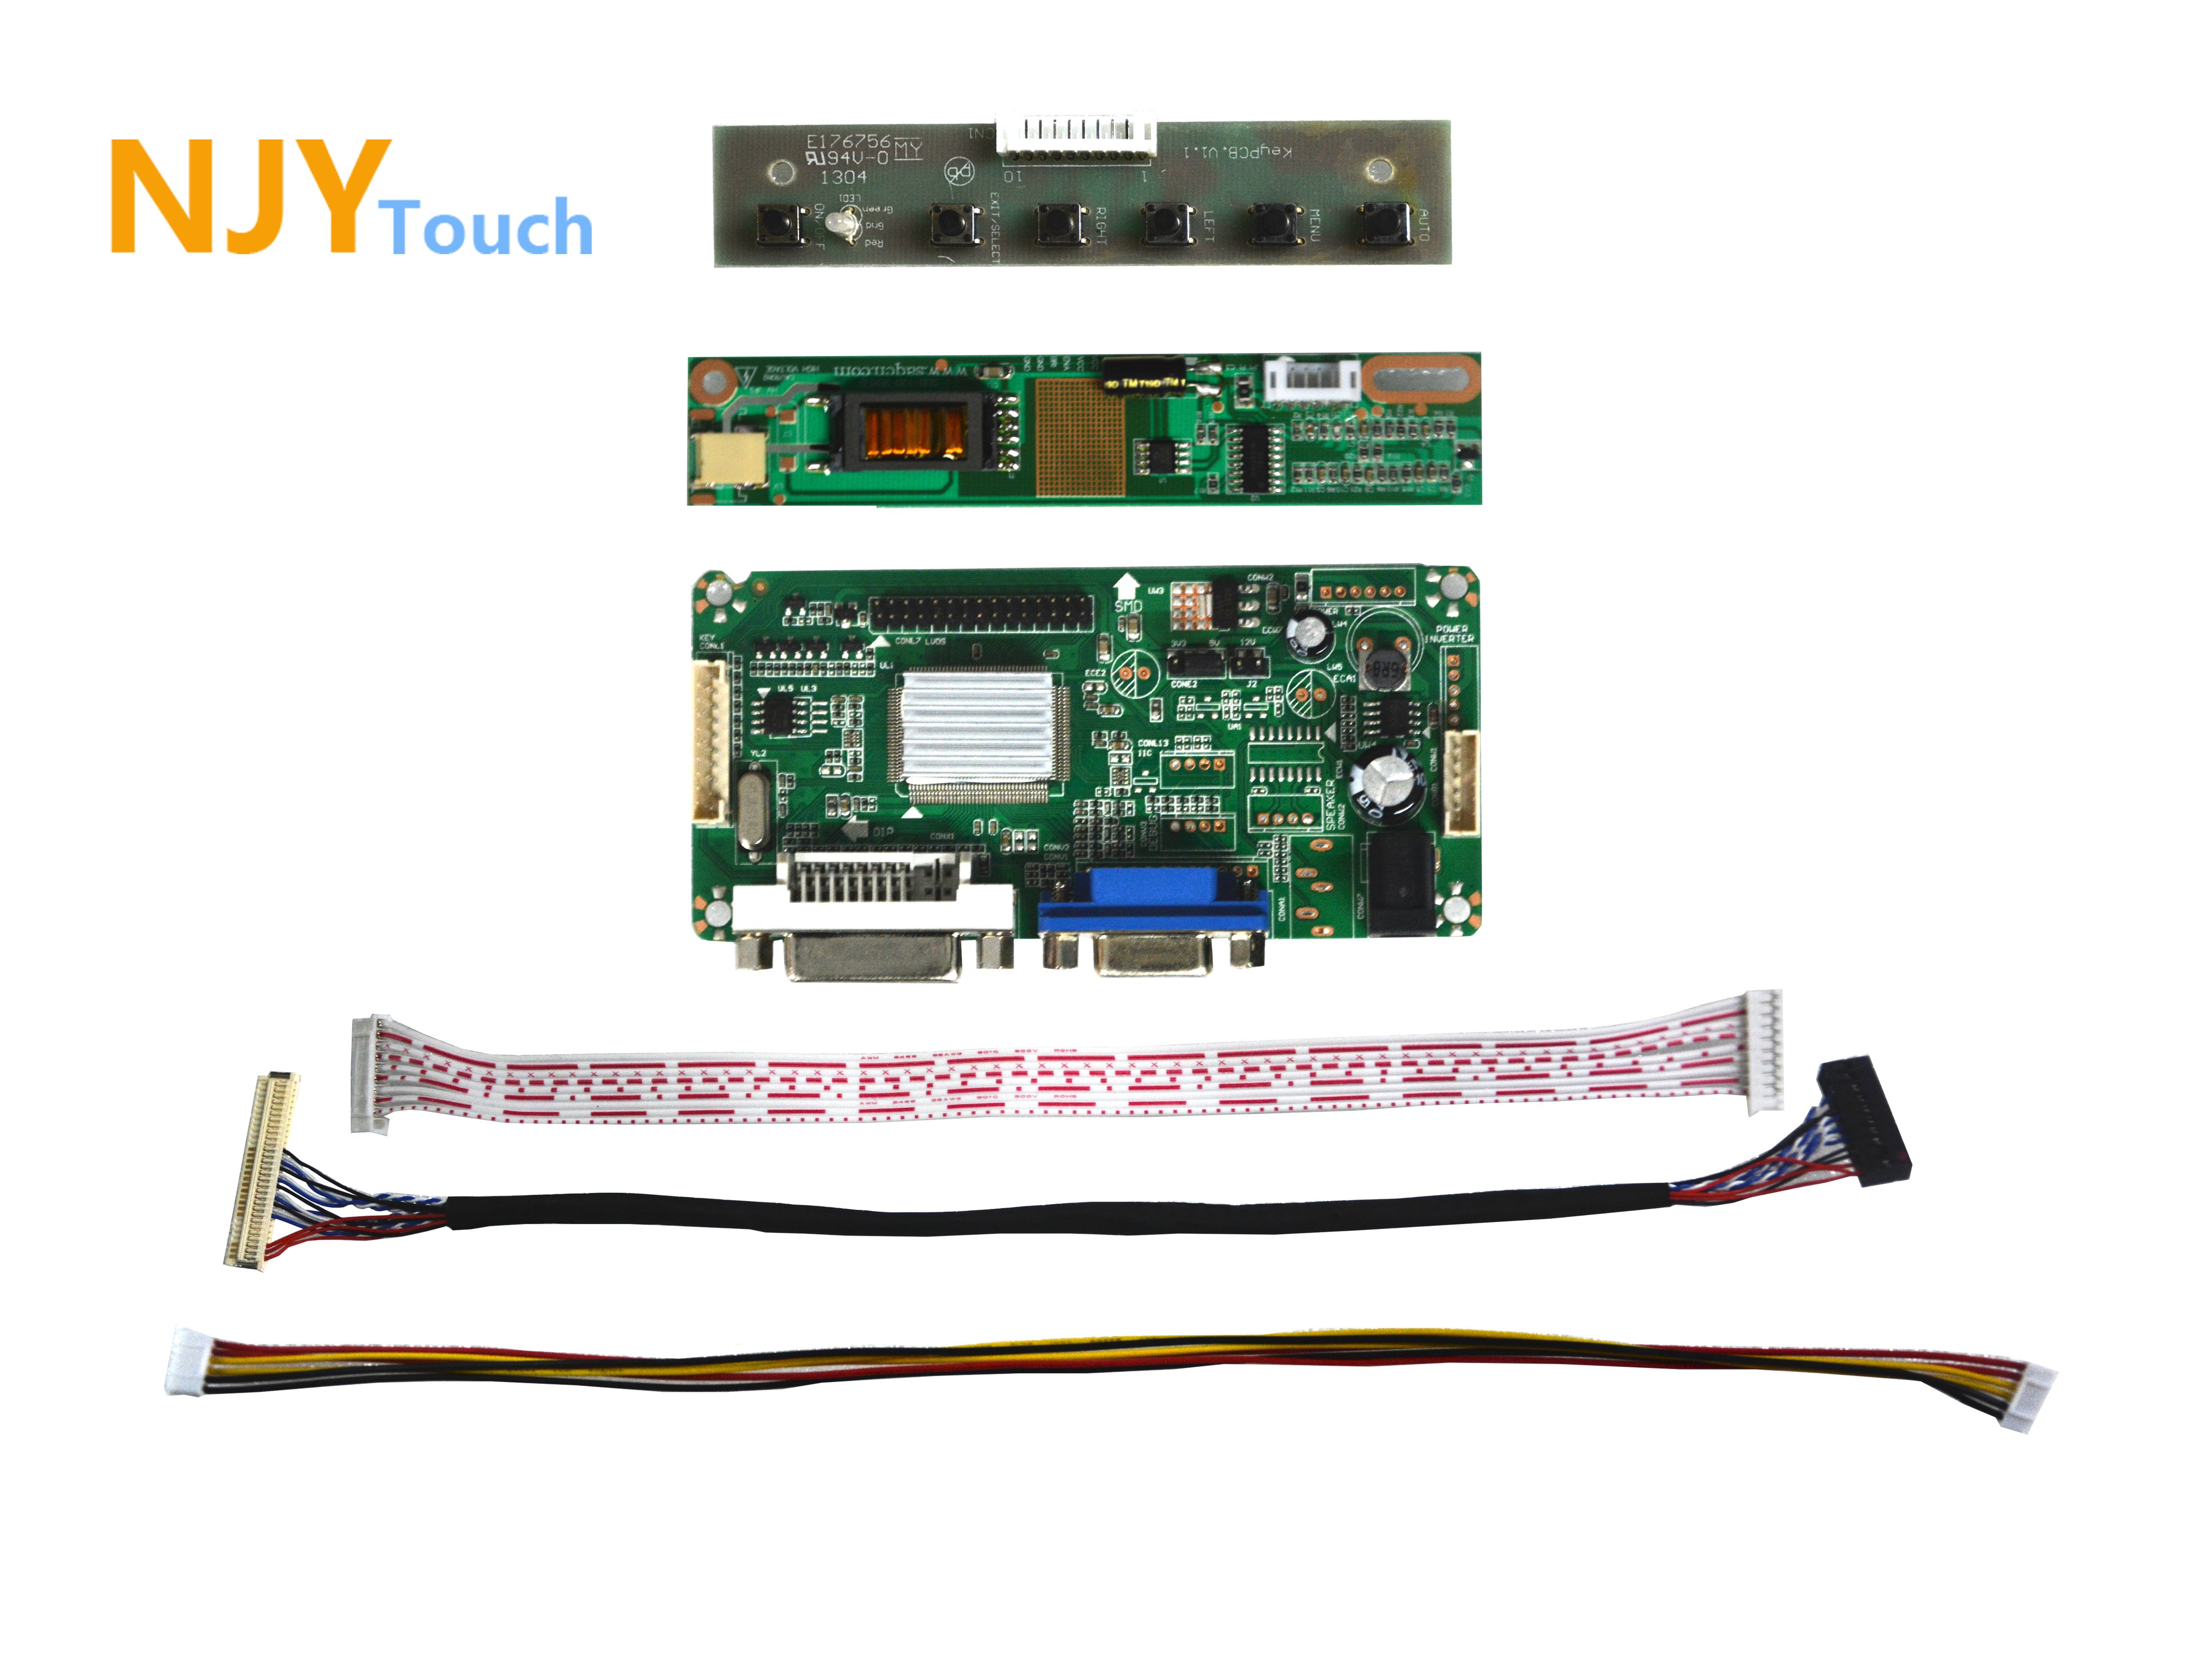 NJYTouch LM.R61 DVI VGA LCD Controller Driver Board For 15inch HSD150PX14-A00 HSD150PX17-A00 1024x768 LED Screen